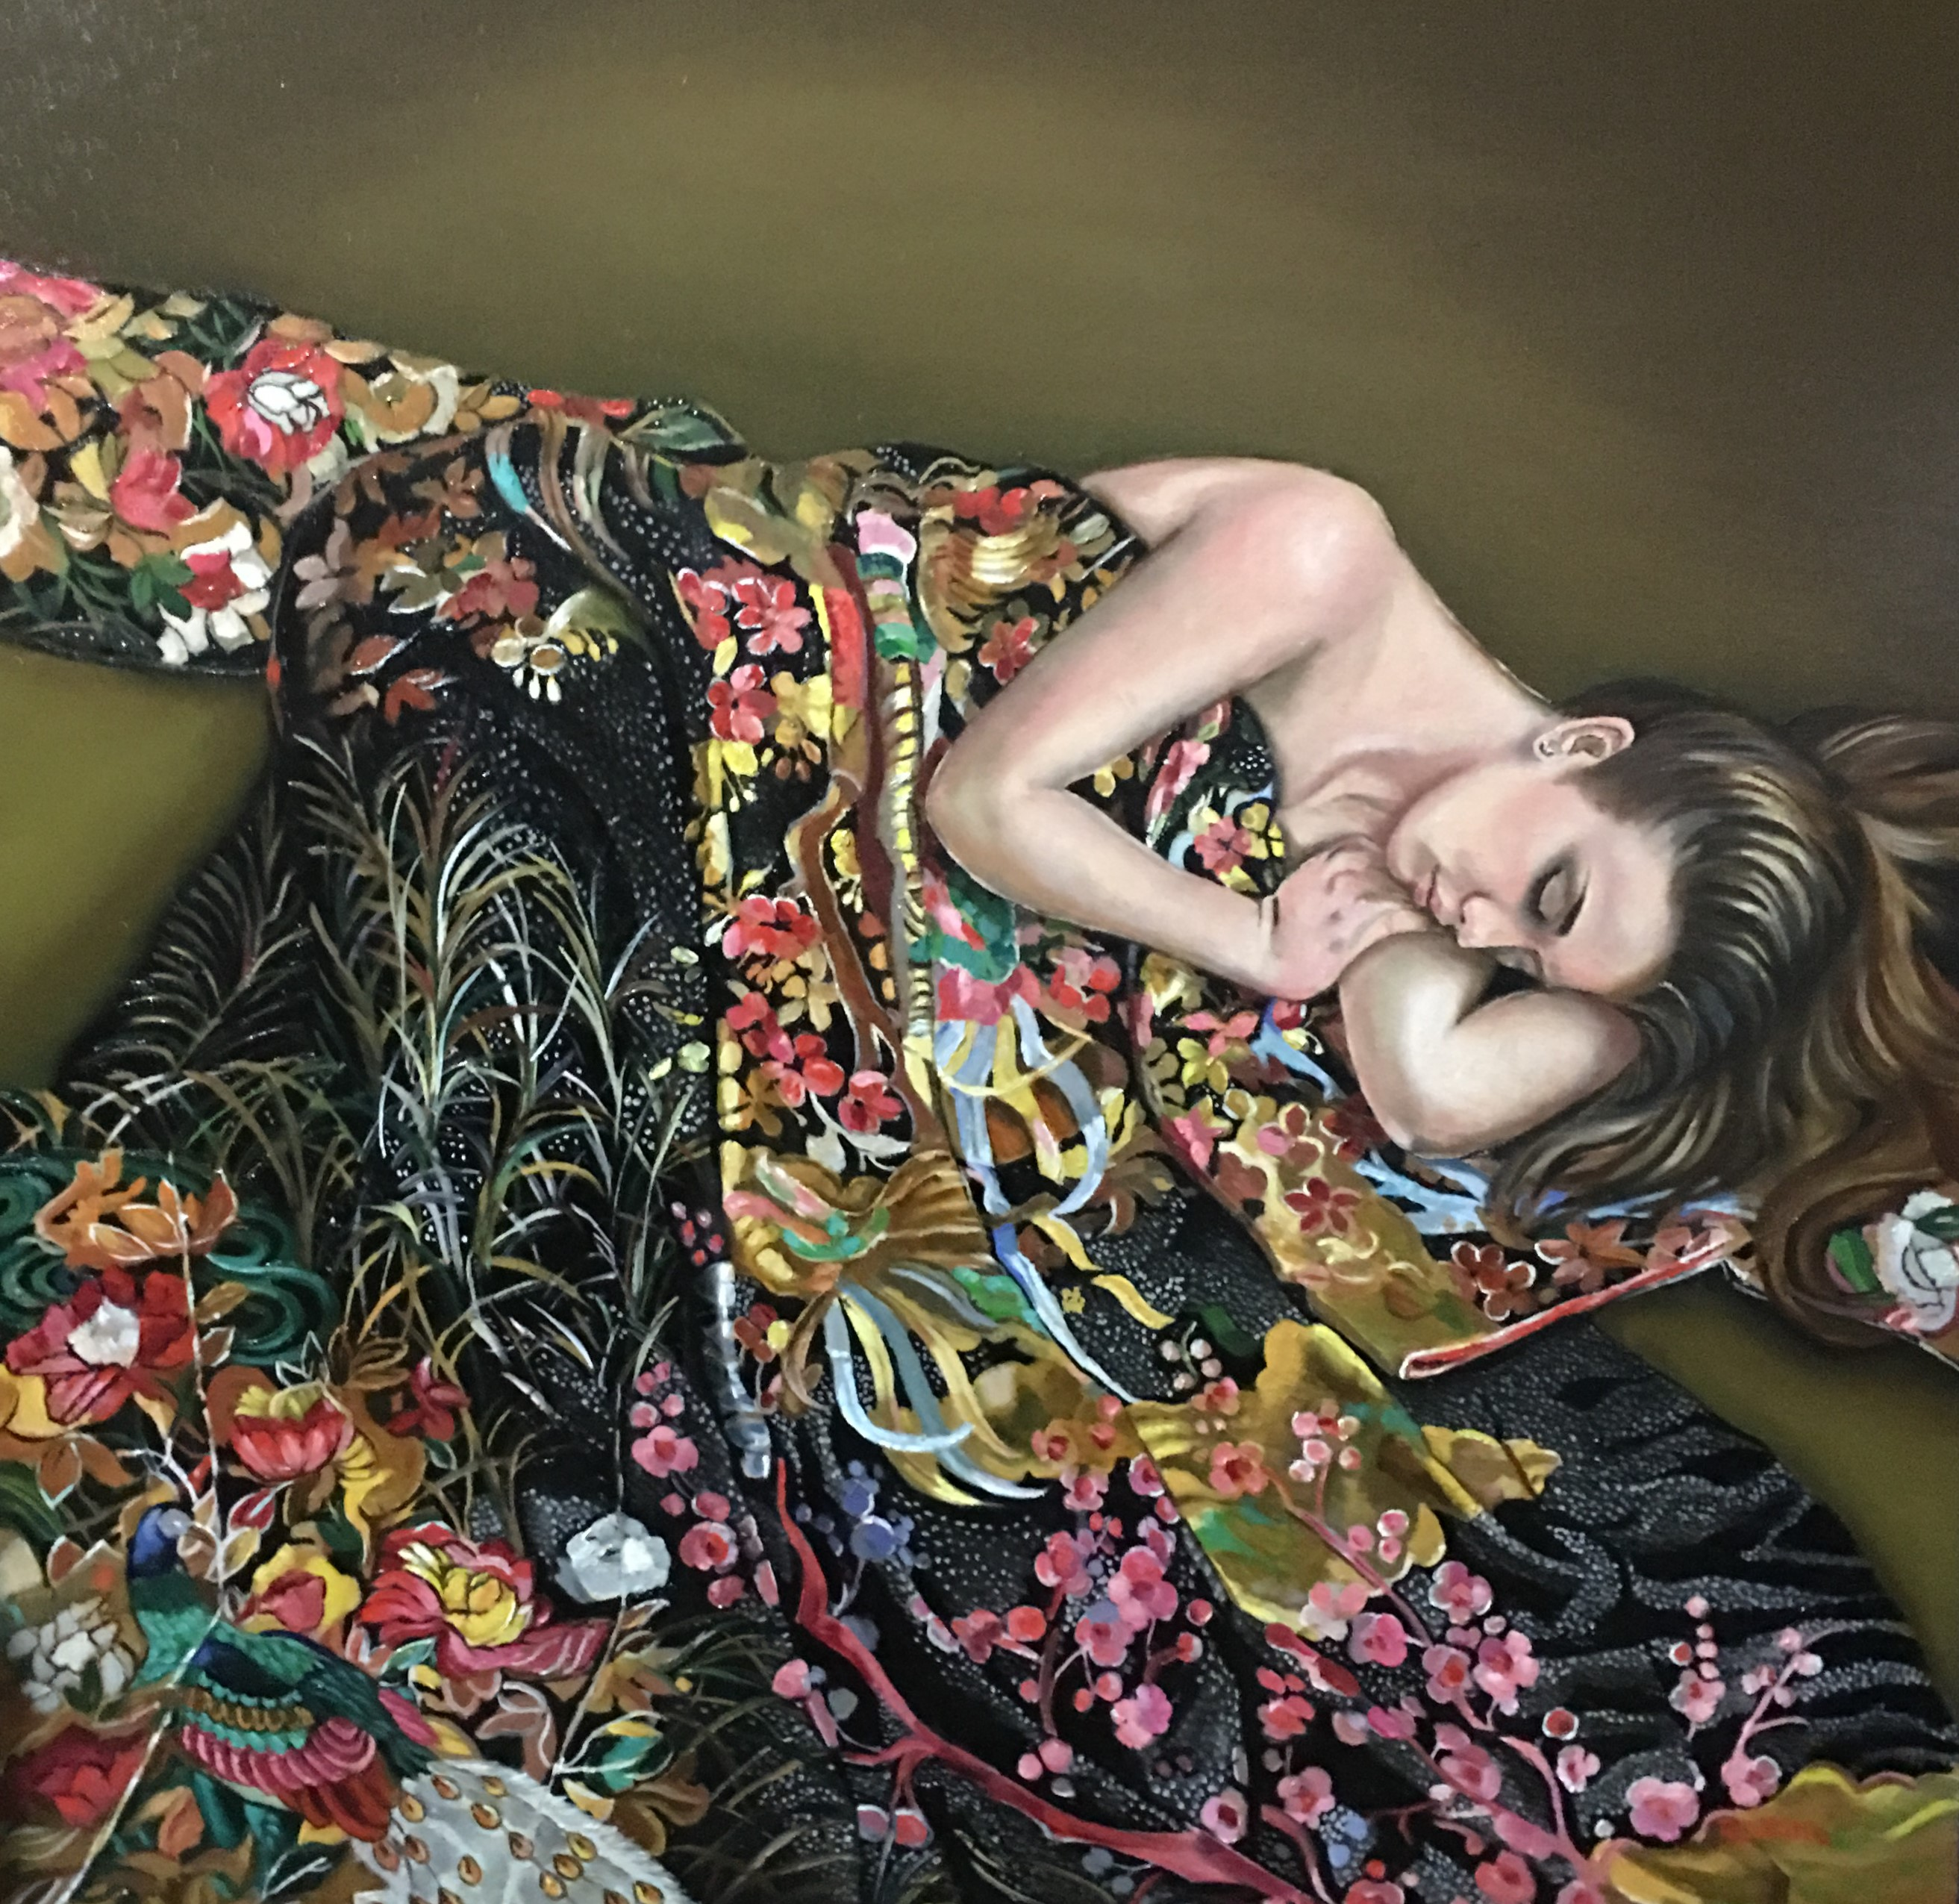 I admire Evan Wilson, he is a Master at painting, I am impressed by his ability to paint and his details.